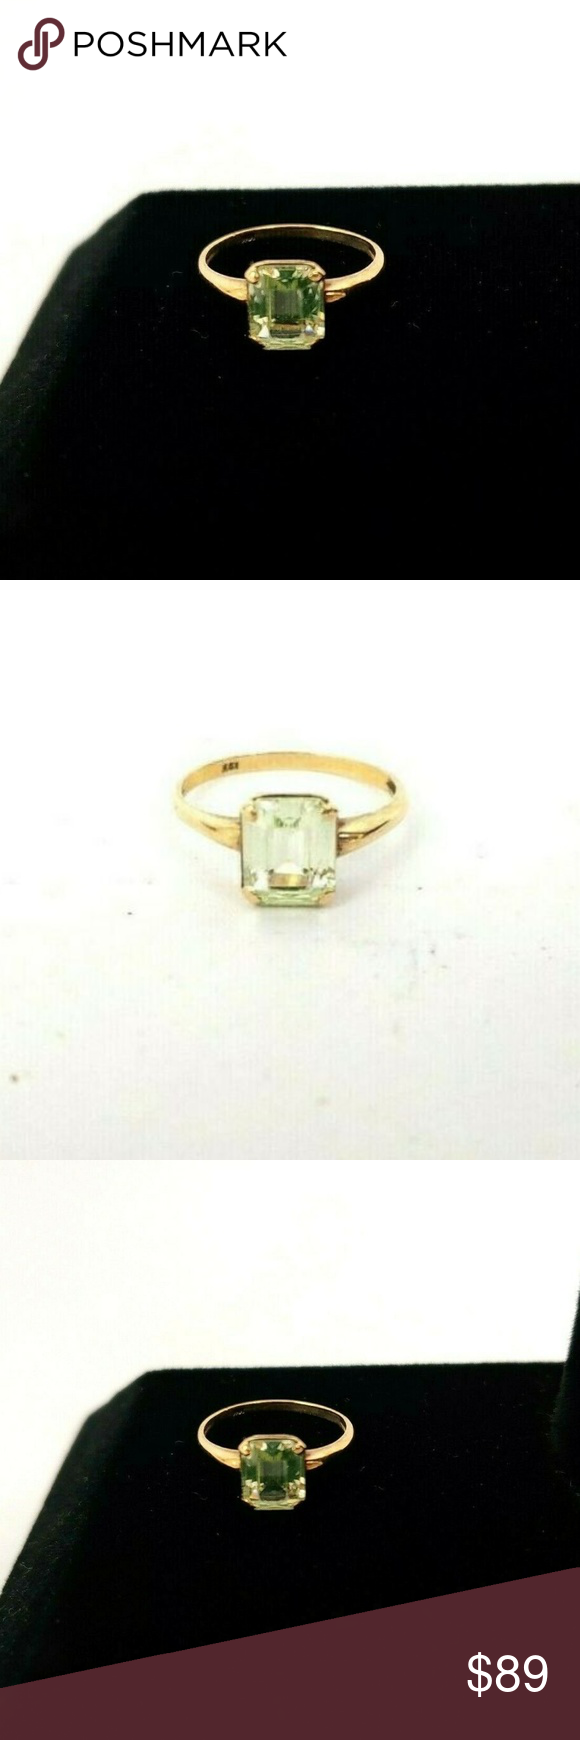 10 Karat Yellow Gold 1 5 Gram Synthetic Spinel Siz 10 Karat Yellow Gold Ring Size 8 1 5 Gram Synthetic Spine Womens Jewelry Rings Spinel Ring Yellow Gold Rings